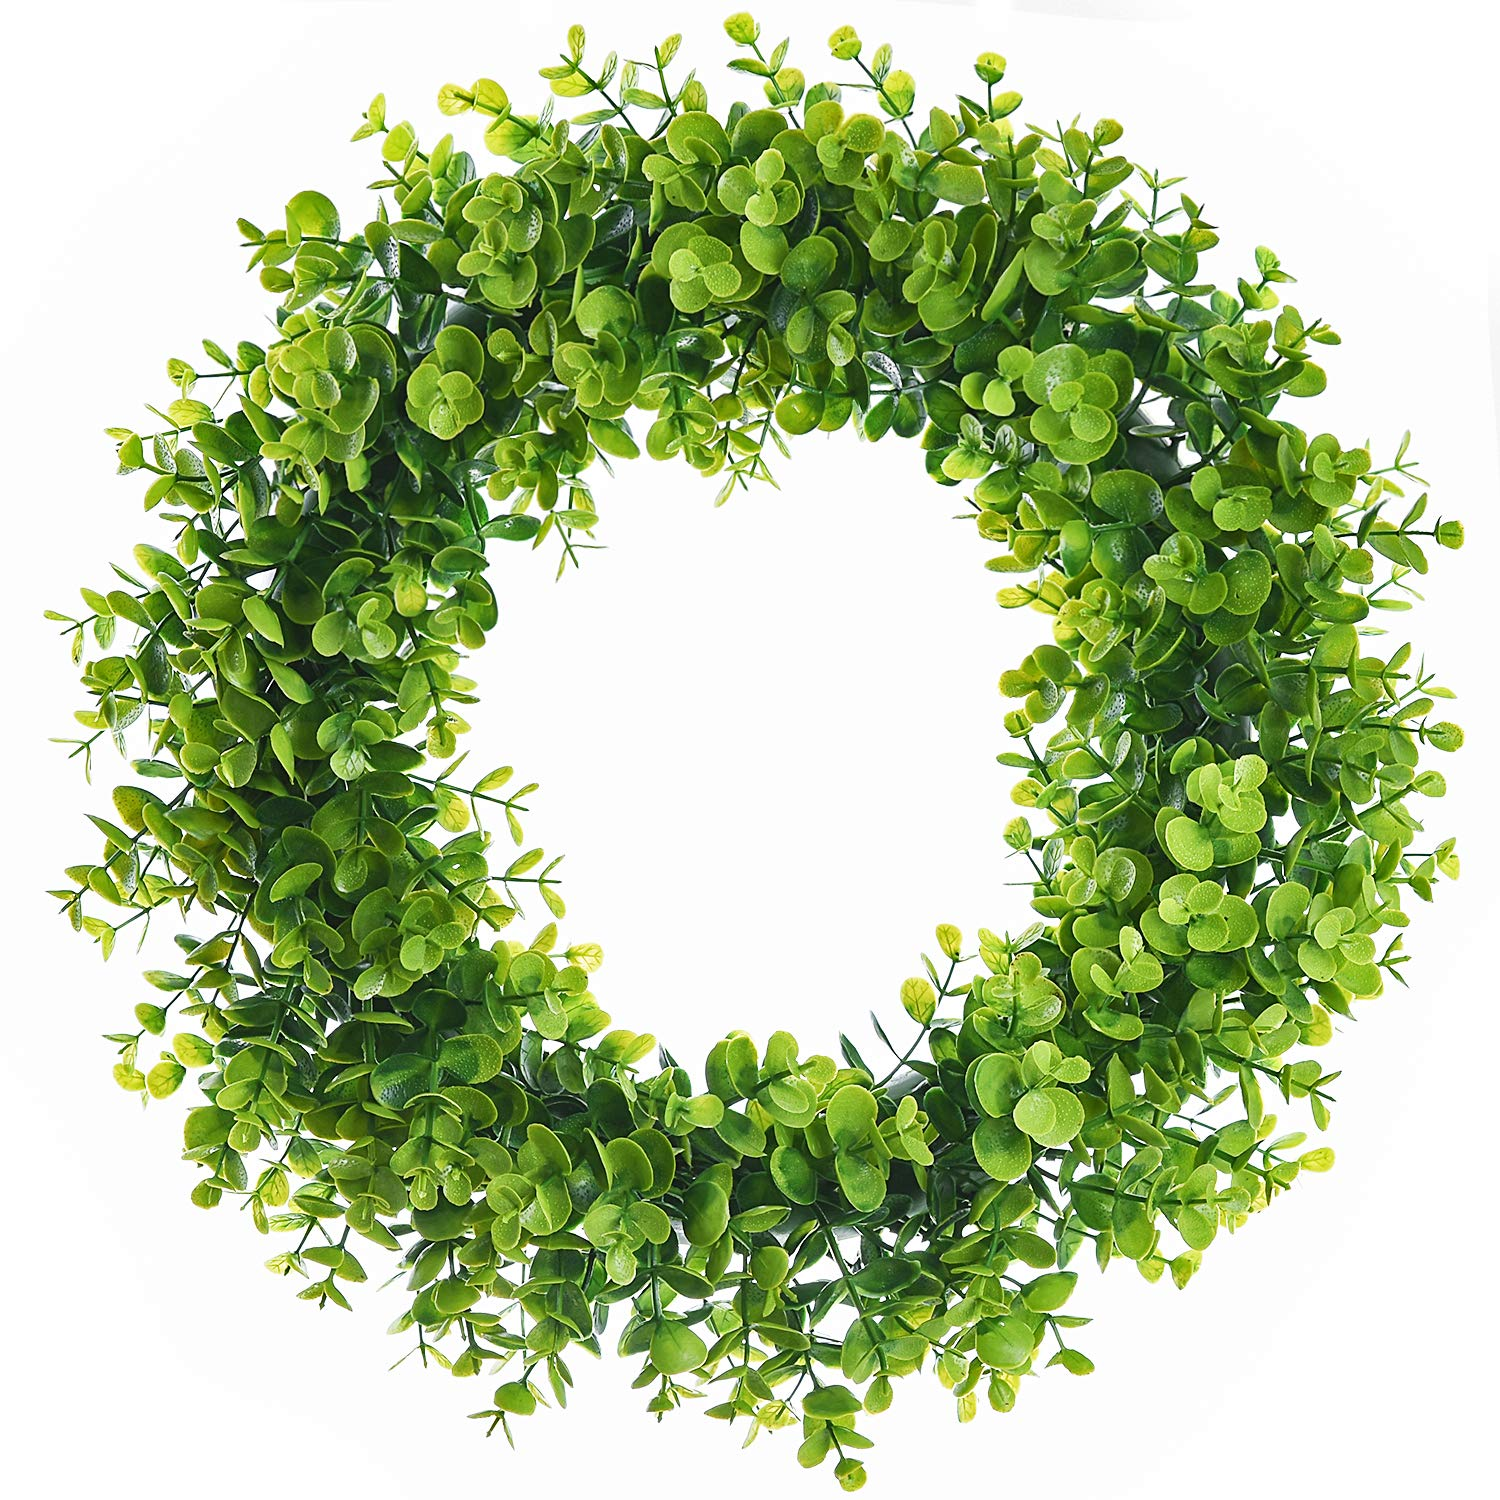 Lvydec Artificial Green Leaves Wreath - 15'' Fake Eucalyptus Wreath Outdoor Green Wreath for Front Door Wall Window Party Décor by Lvydec